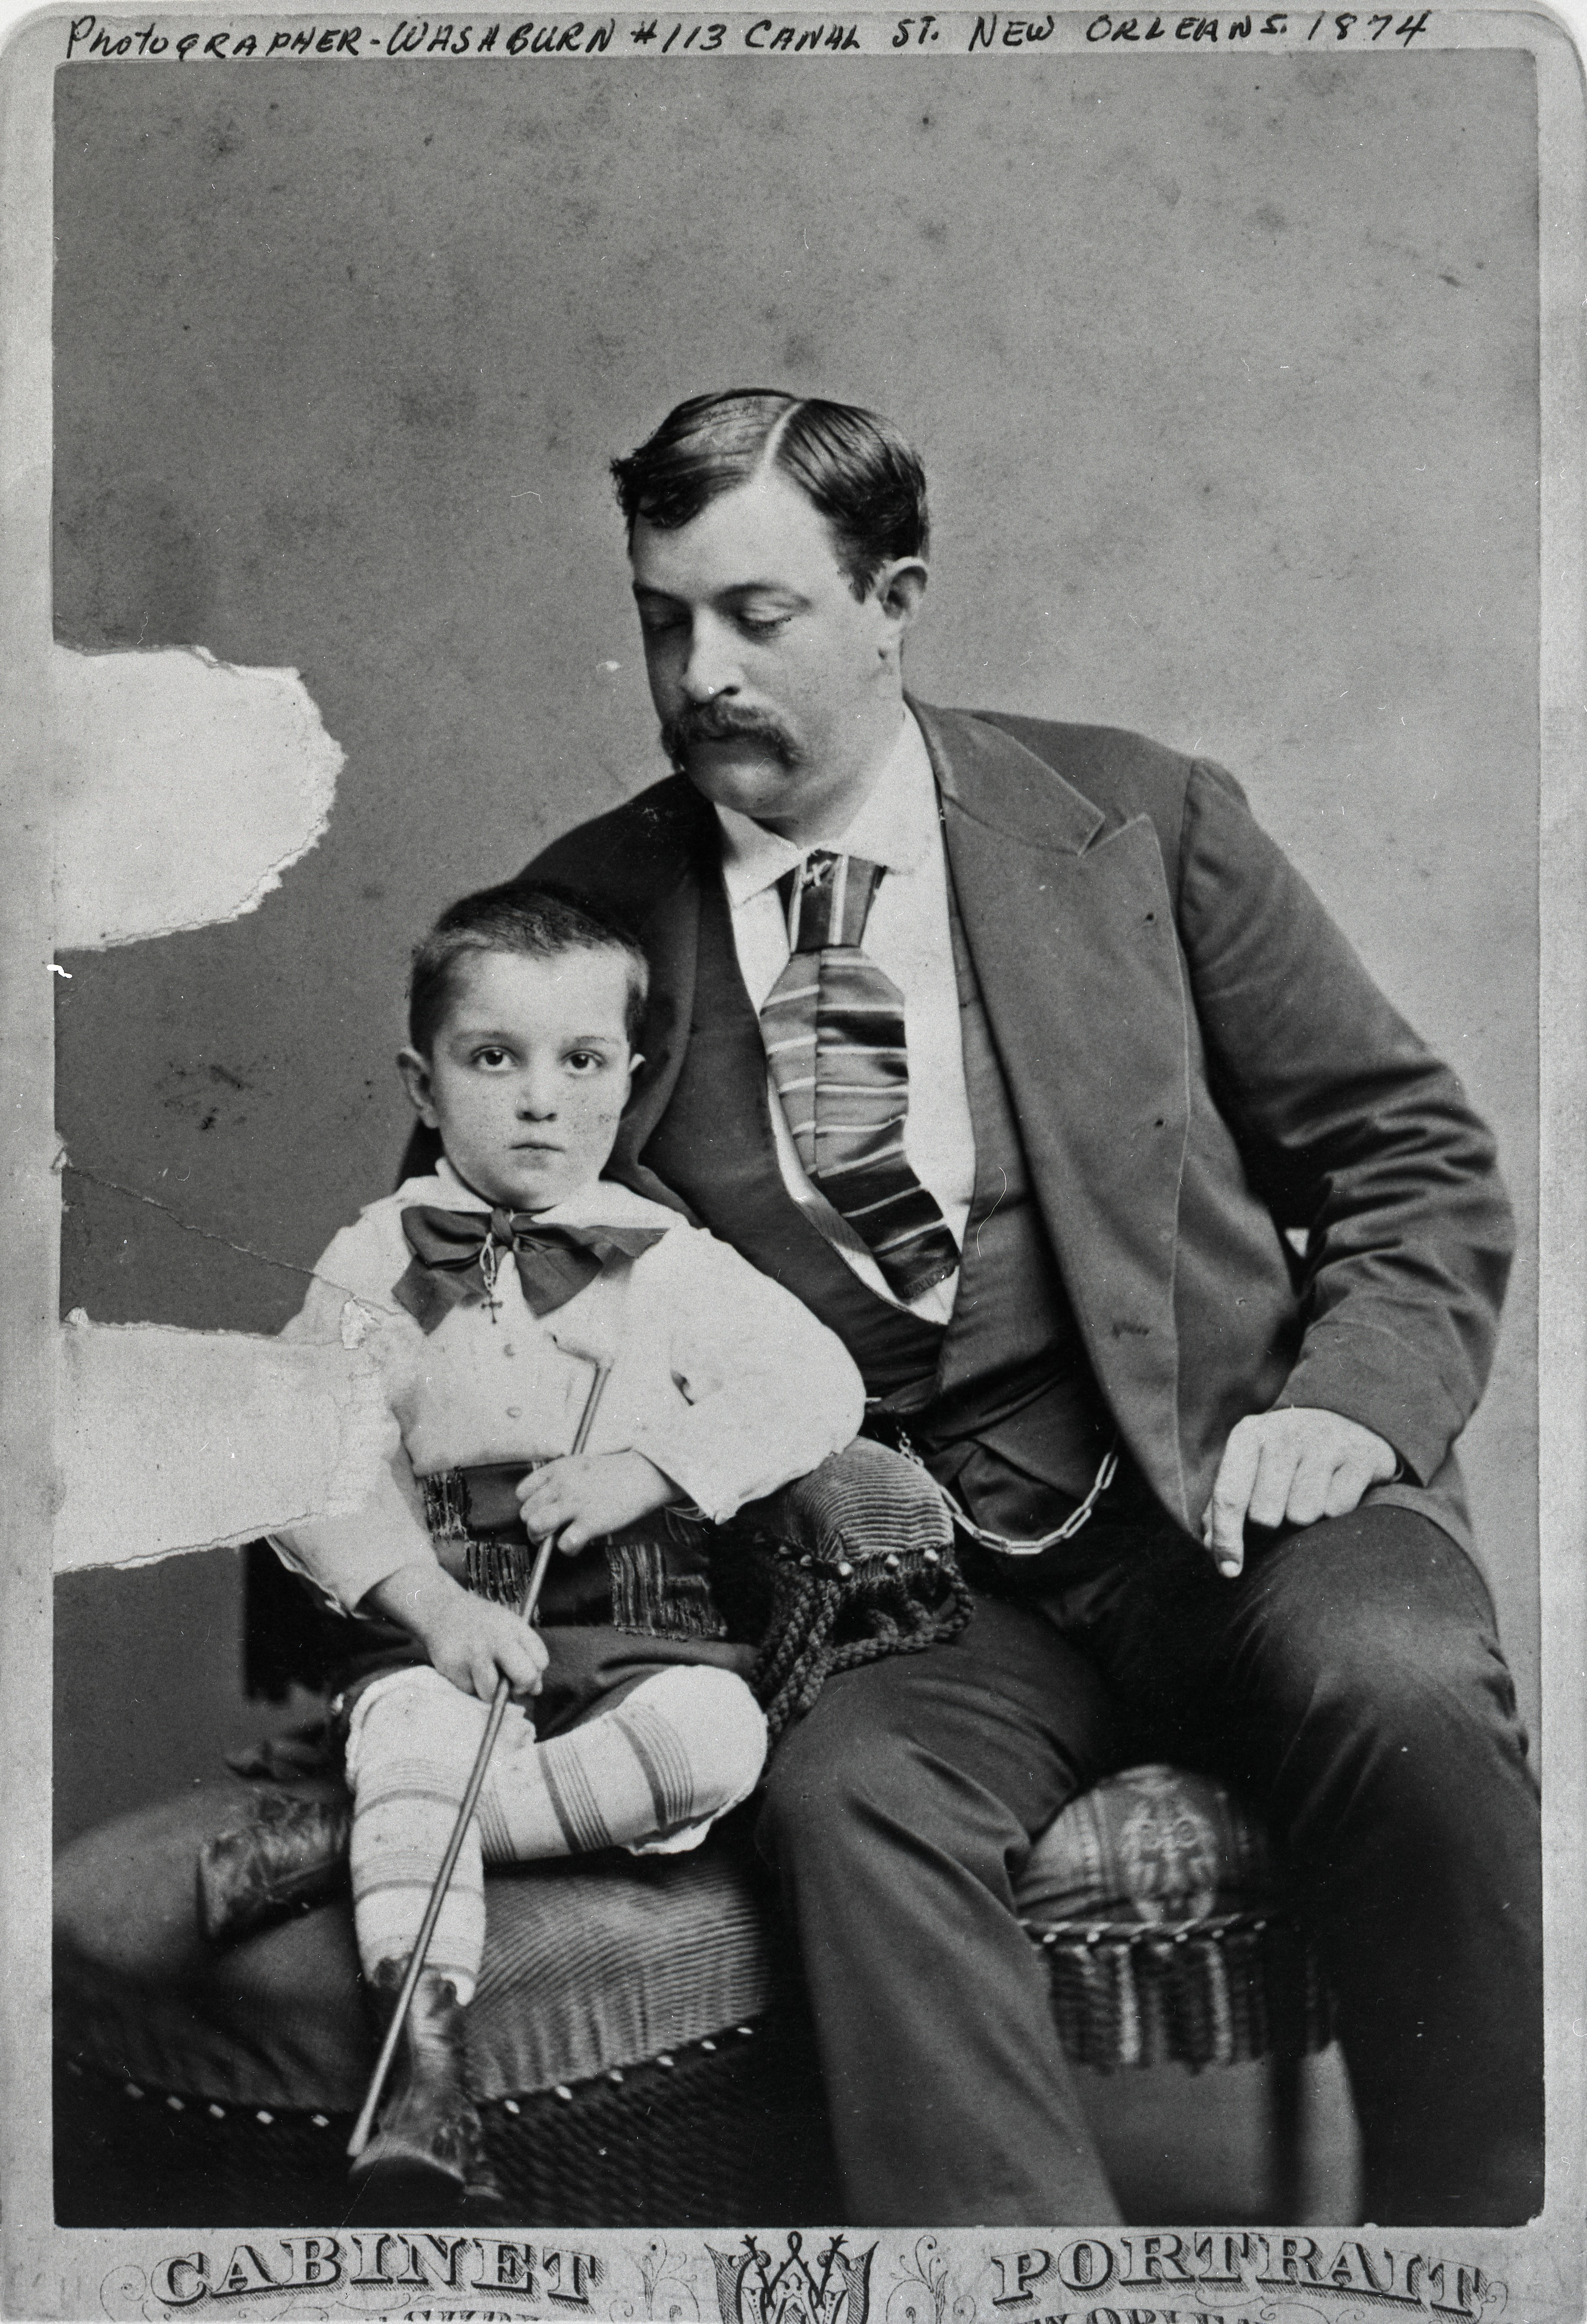 FileCarte De Visite Of Oscar Chopin Husband Kate And Son Jean In New Orleans From Black White Negative 1874